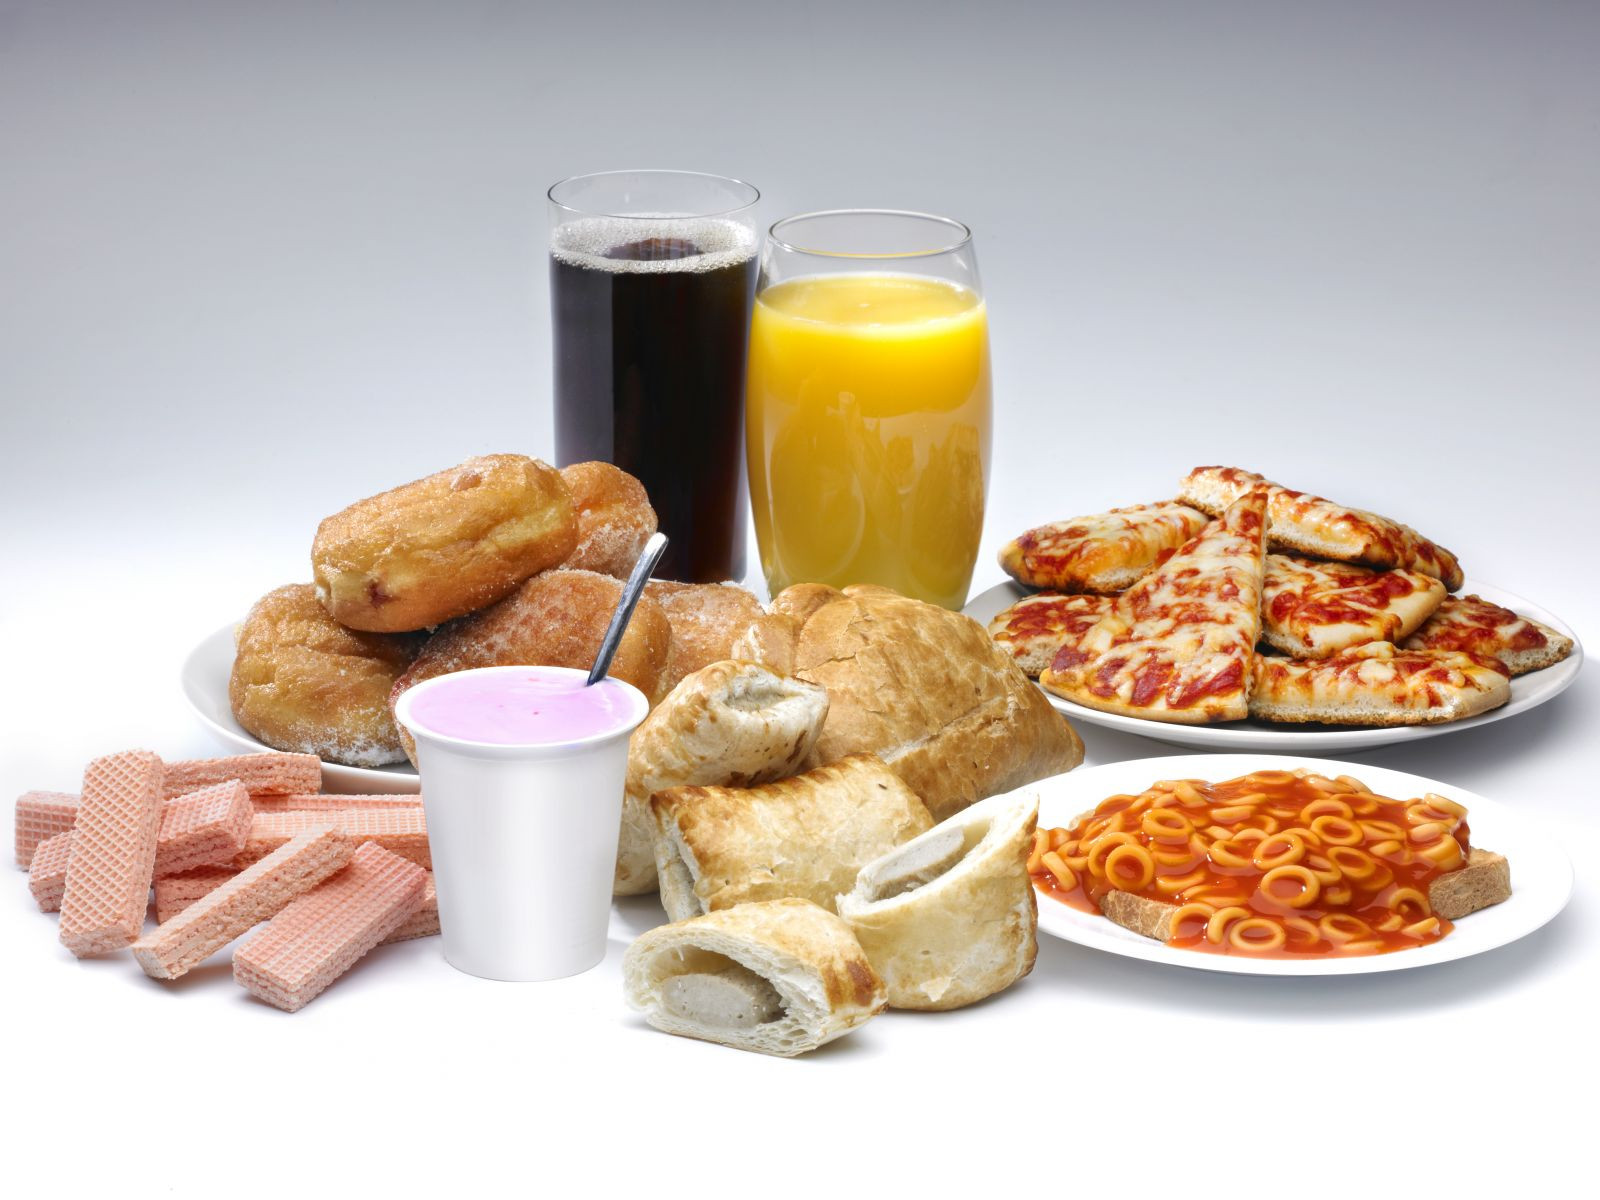 inflammatory foods and risk of colon cancer